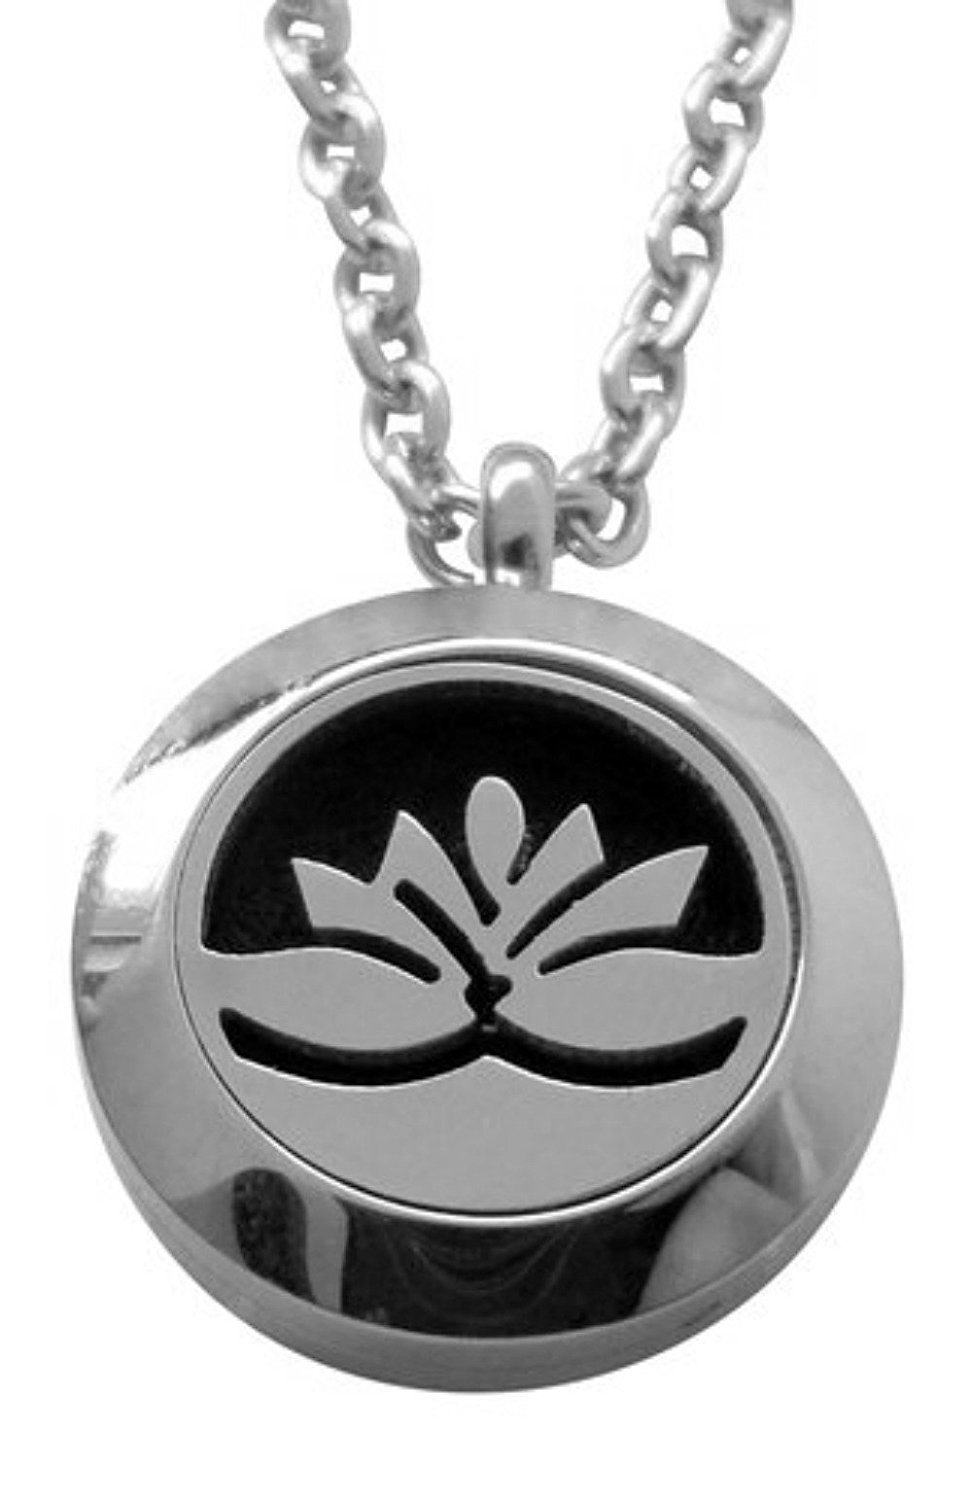 Cheap Lotus Essential Oil Extract Find Lotus Essential Oil Extract